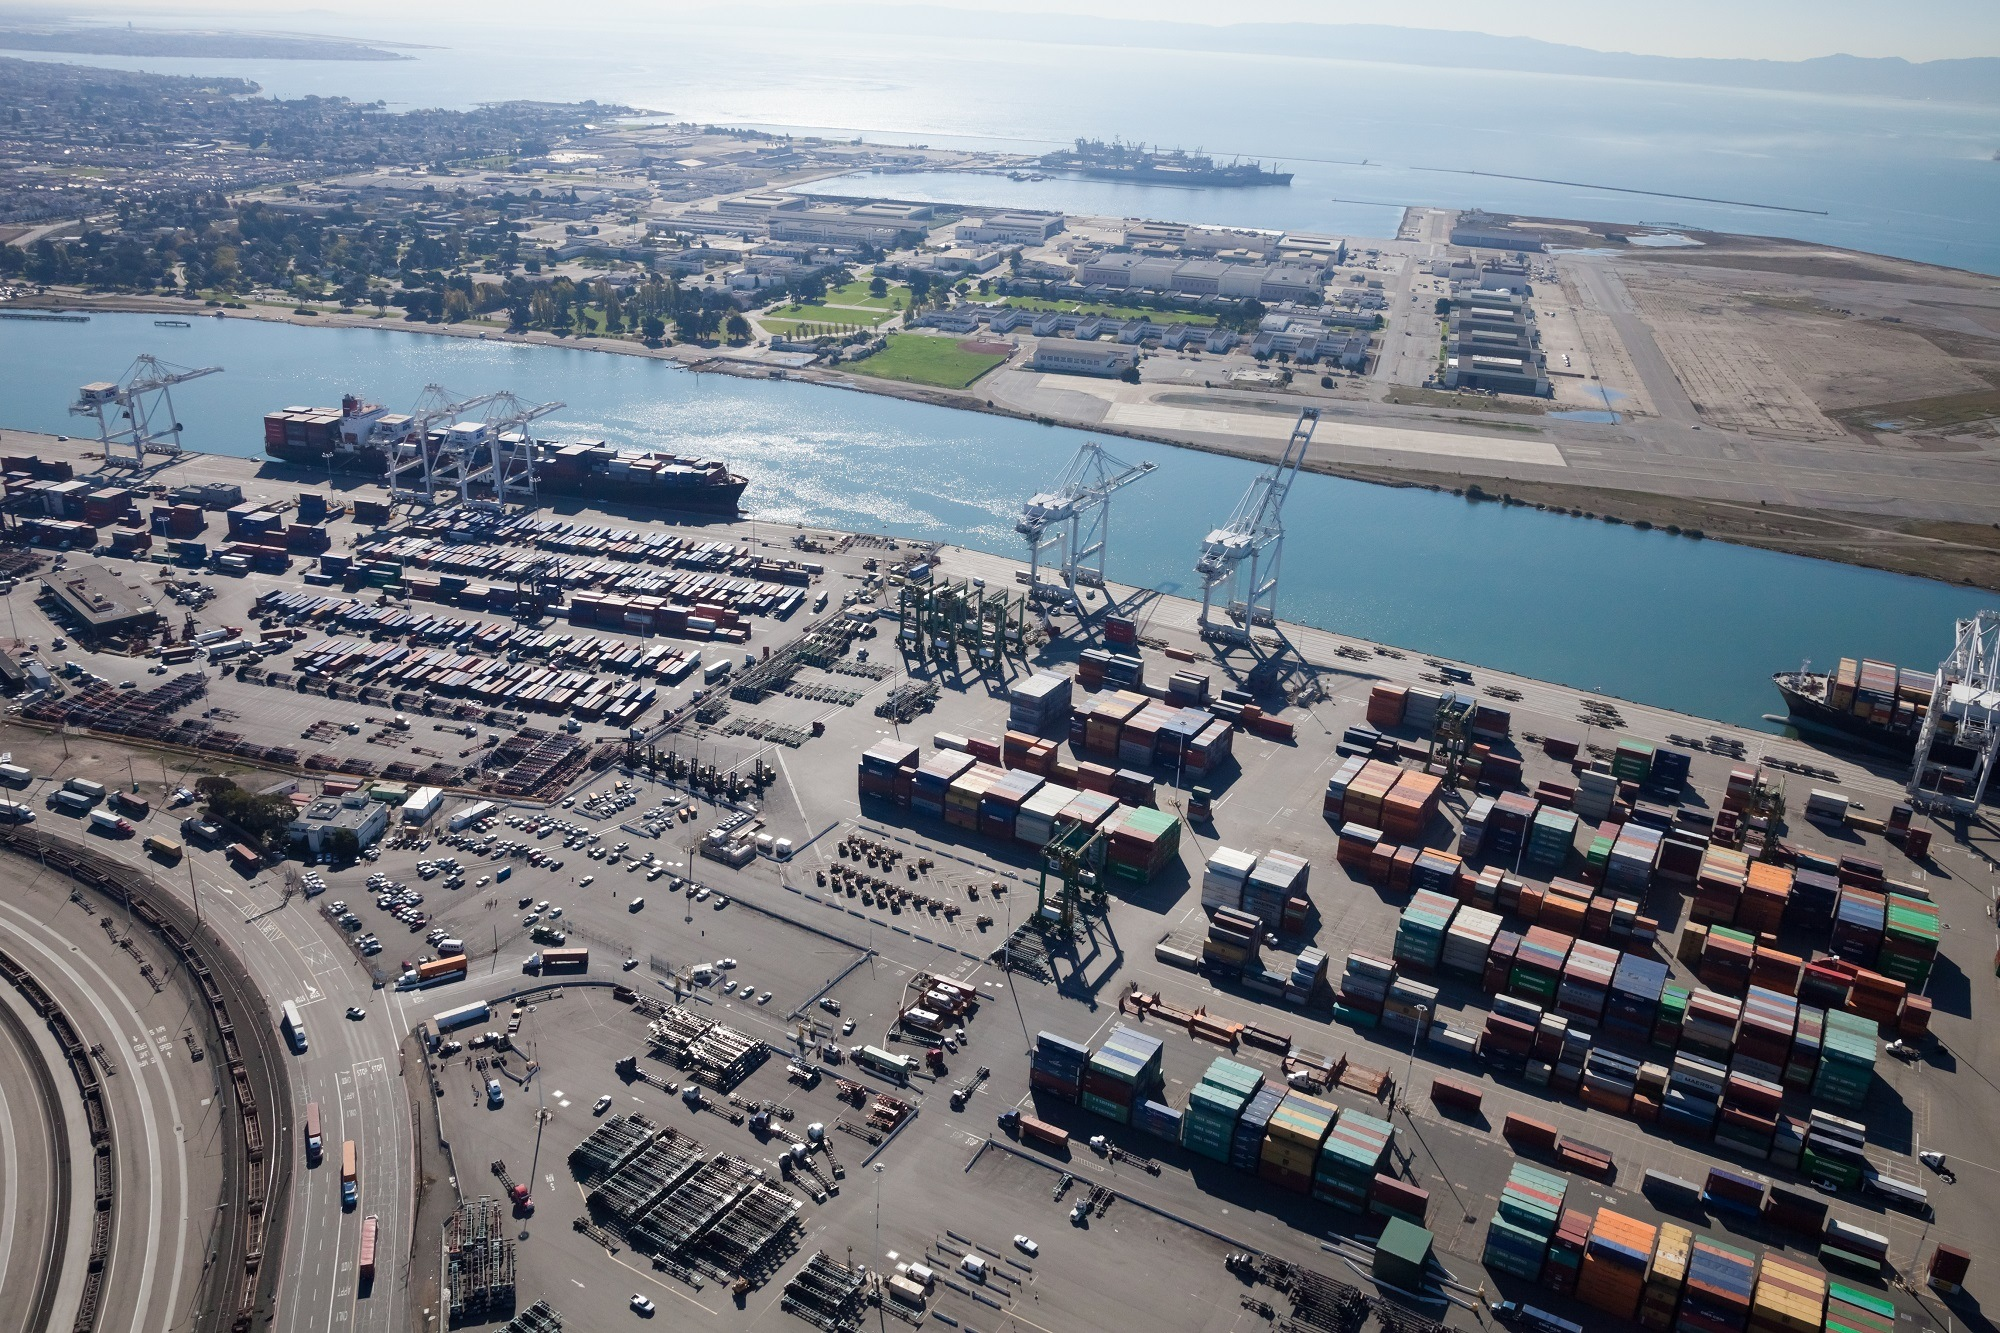 Oakland, California, USA - October 26, 2011: Port of Oakland, Middle Harbor Container Terminal. Terminal occupies 81 acres, 5 traveling container-handling cranes including 374 outlets for refrigerated cargo containers. Union Pacific Railroad operates north of facility, on opposite side of Middle Harbor Road.